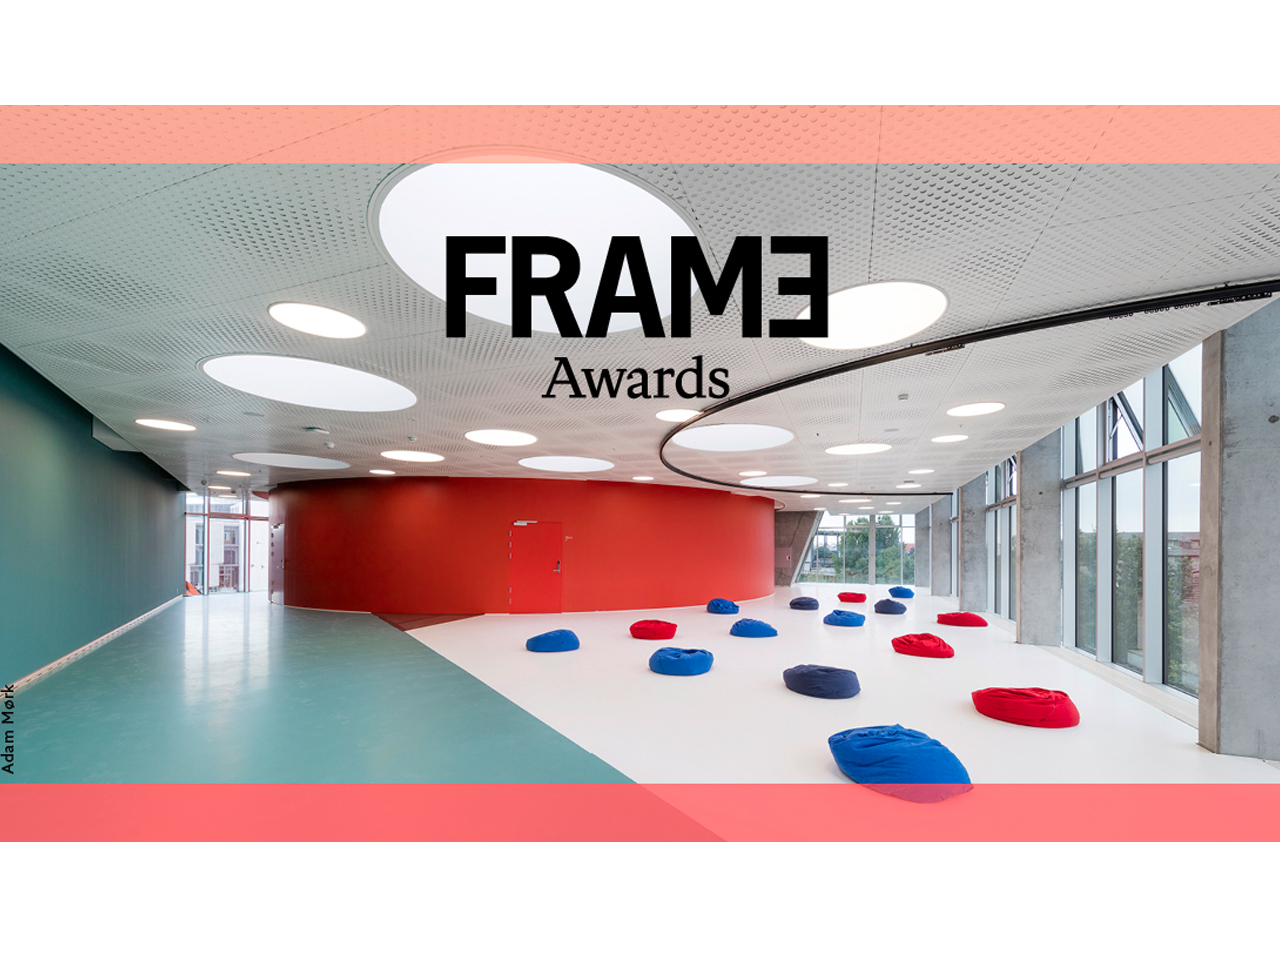 Winy Maas announced as a jury member for the Frame Awards 2017